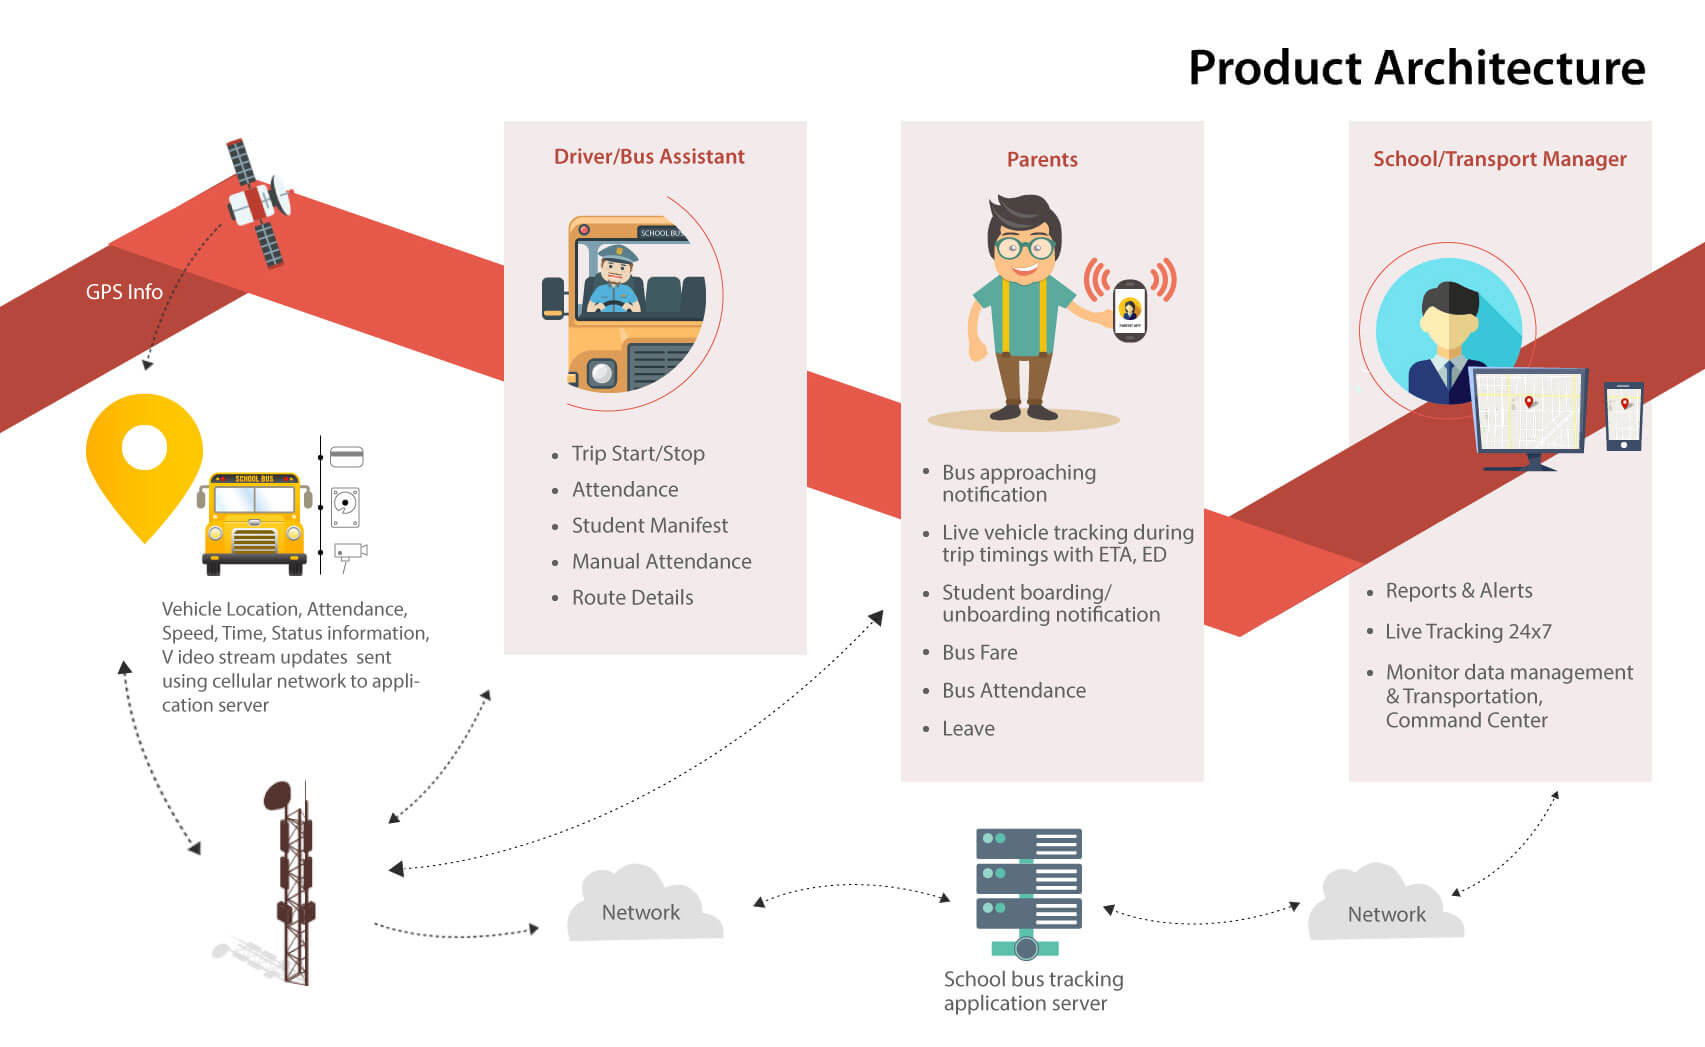 School Bus Tracking System Architecture - Trackschoolbus